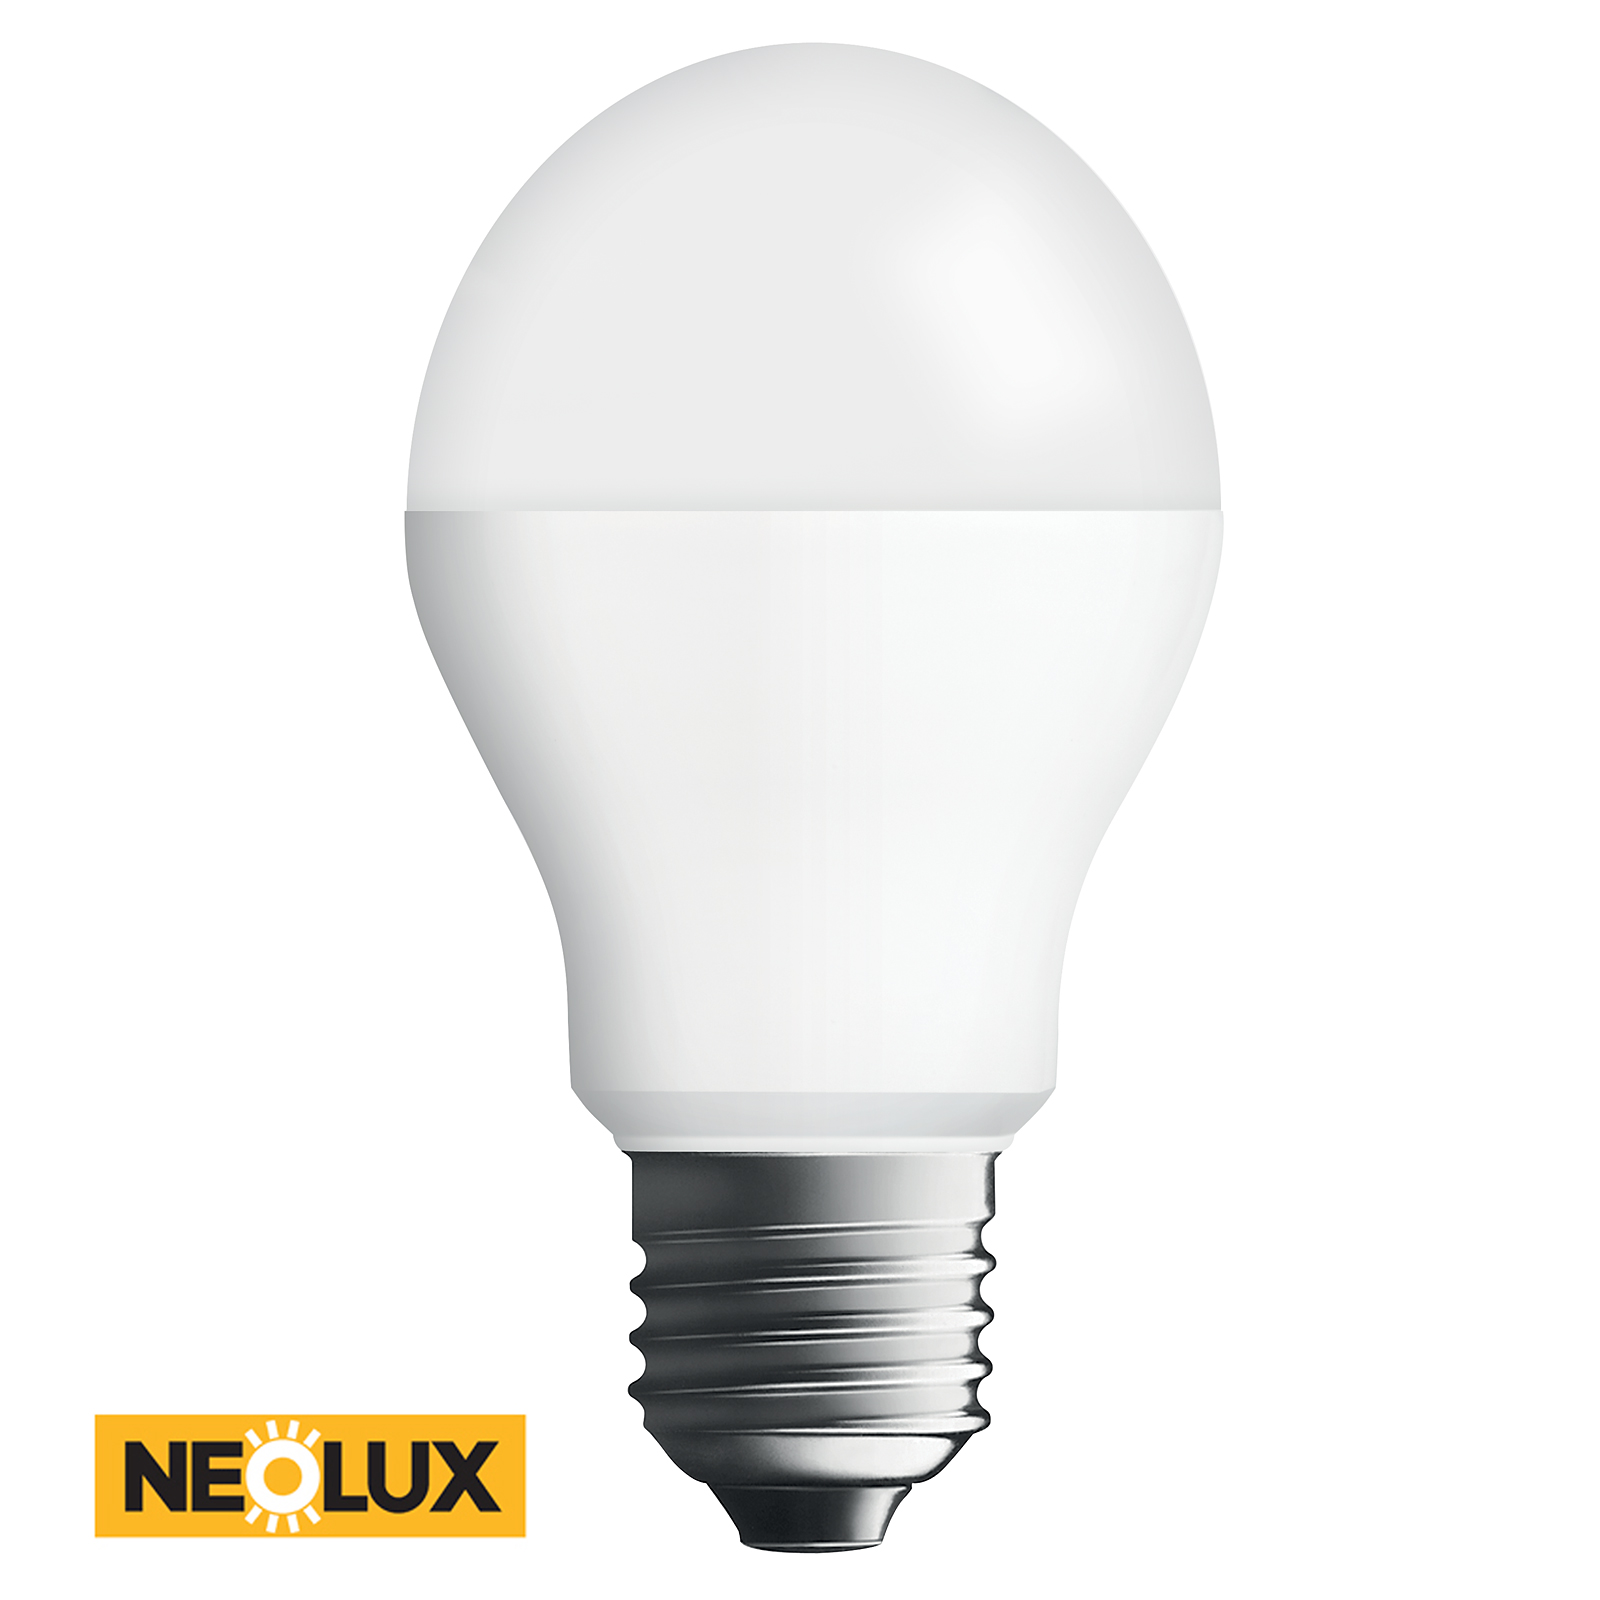 10373-NEOLUX-LED-Lampe-E27-6W-Ersatz-fuer-40-Watt-470-Lumen-warmweiss-1 Wunderbar Led Mr11 Gu4 Warmweiss Dekorationen